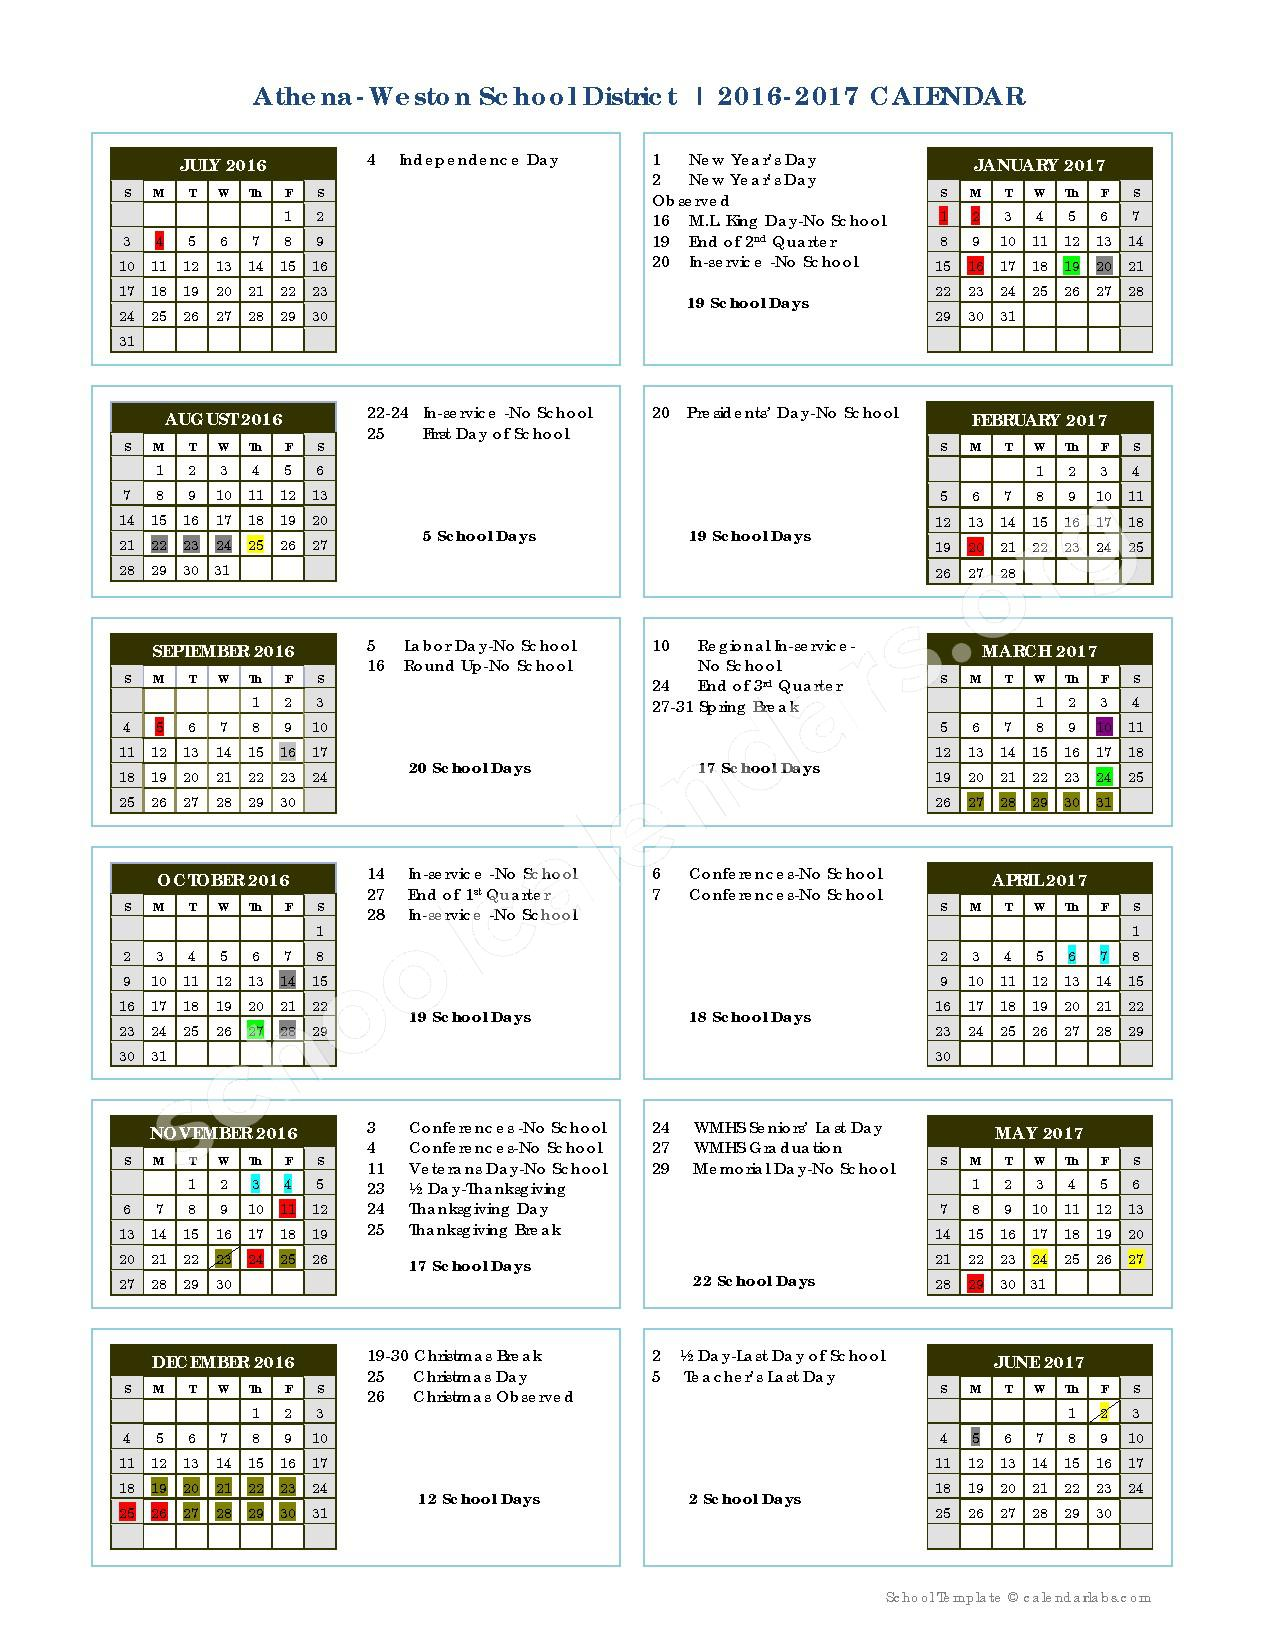 2016 - 2017  District Calendar – Athena-Weston School District – page 1